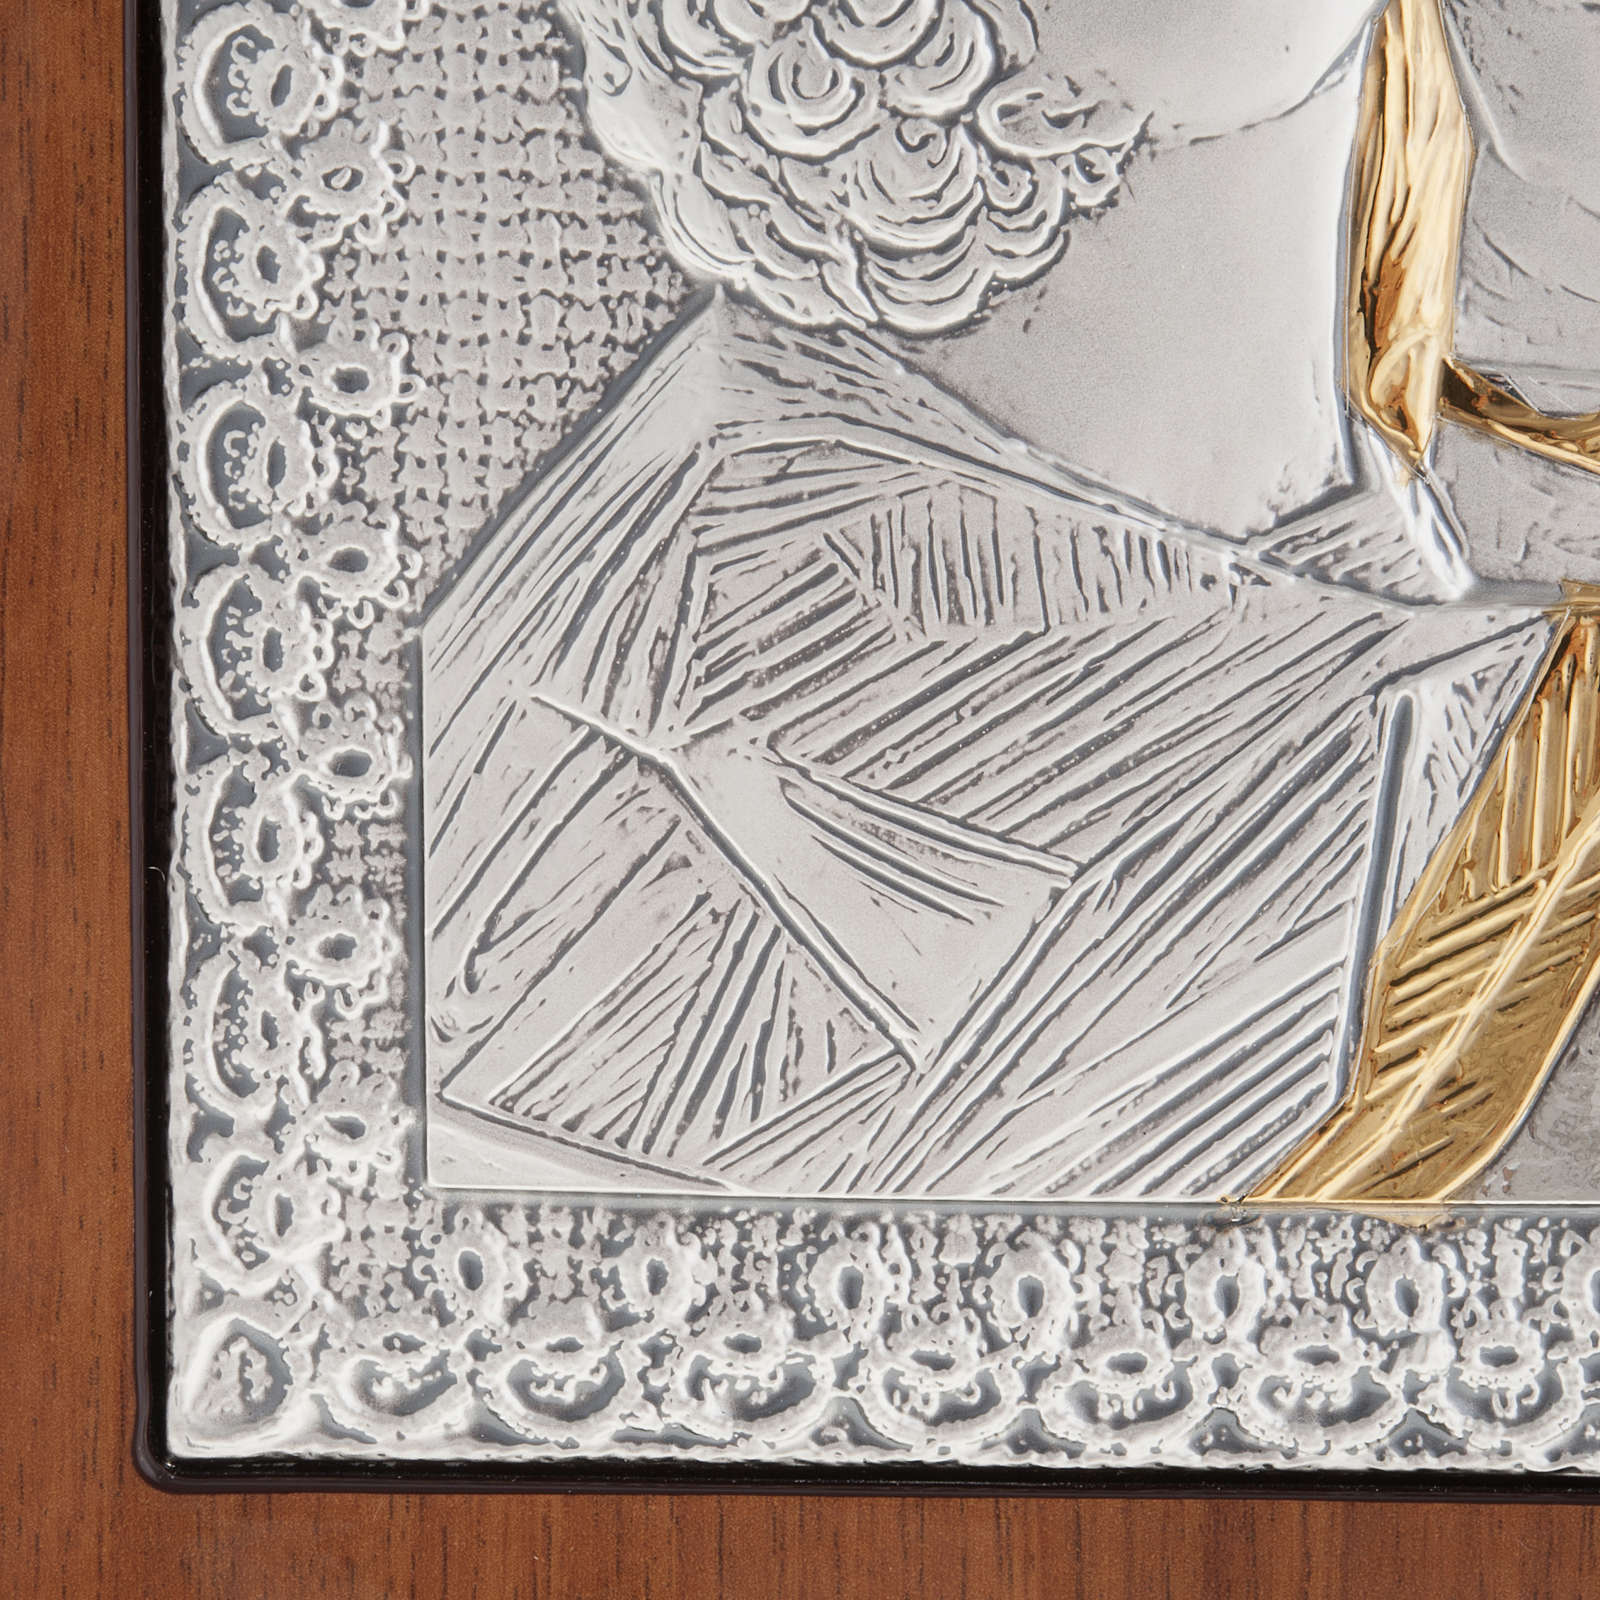 Bas-relief, gold and silver, Our Lady of Tenderness 4